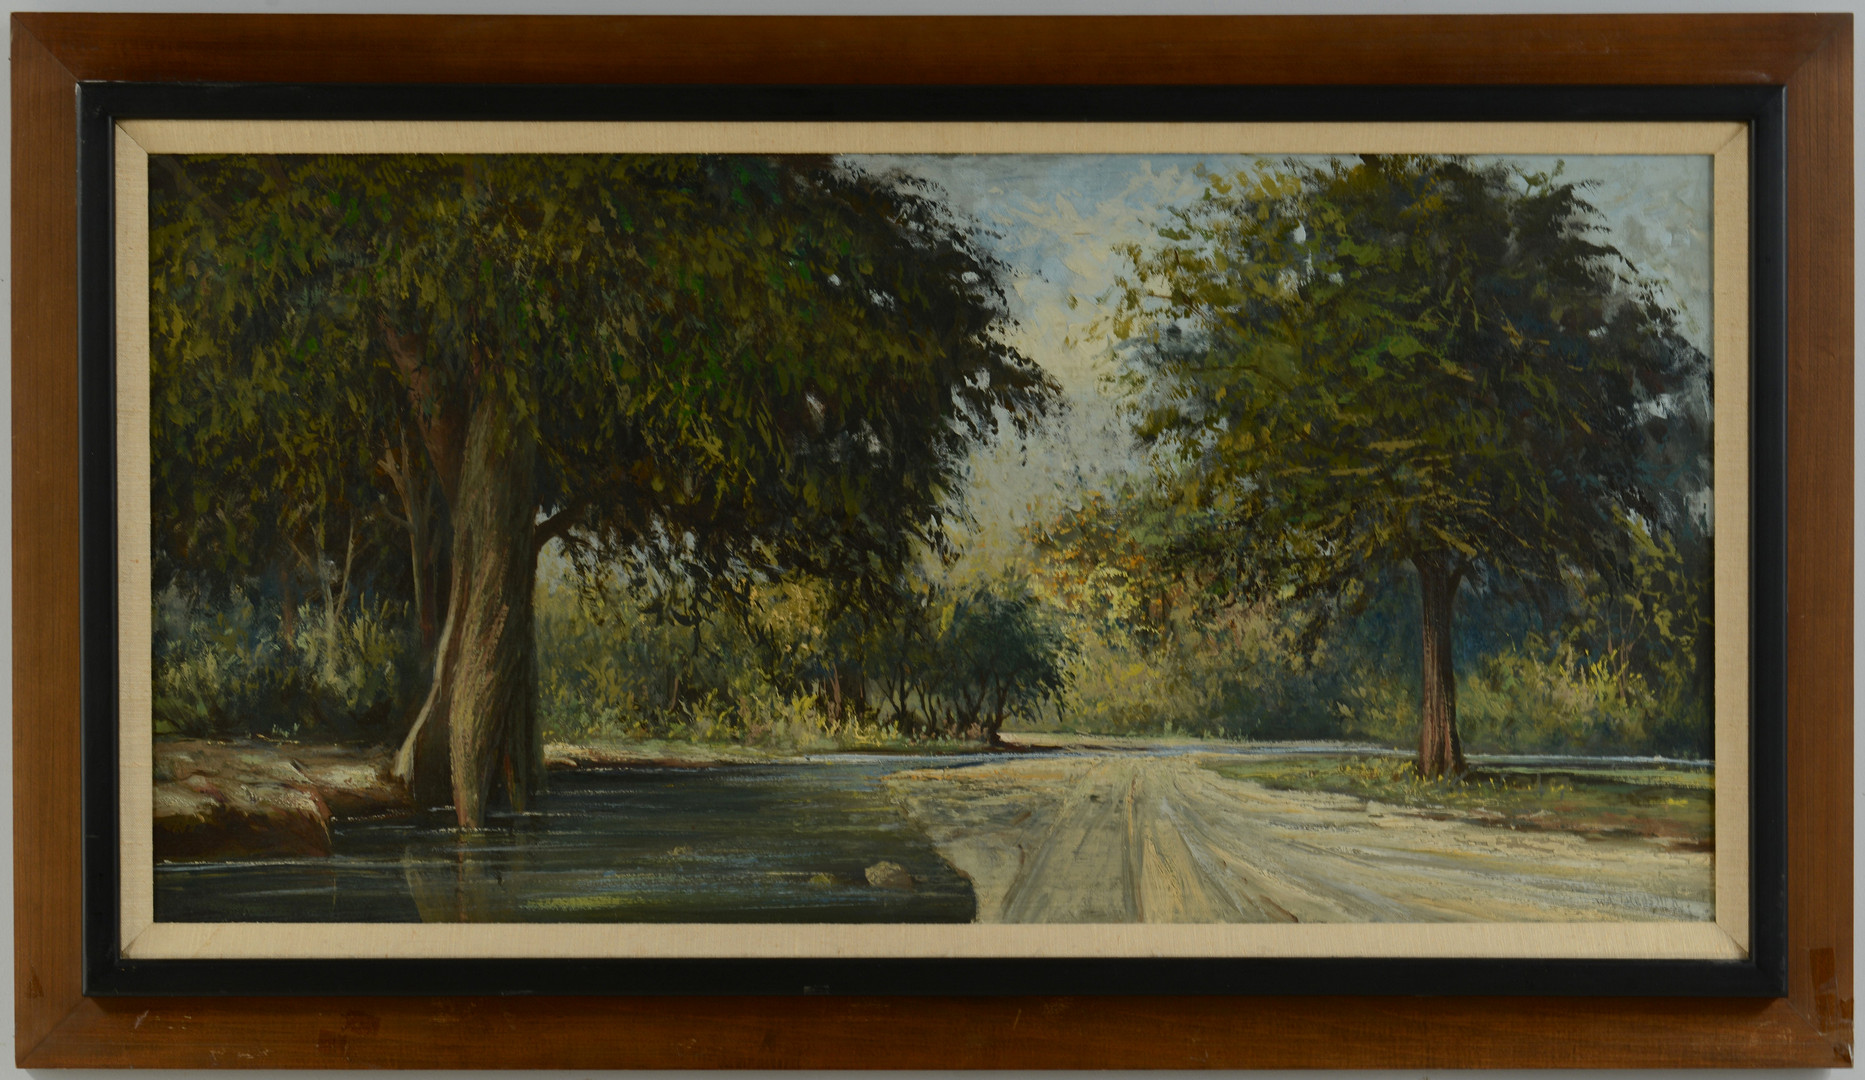 Lot 655: William R. Thrasher Landscape Painting